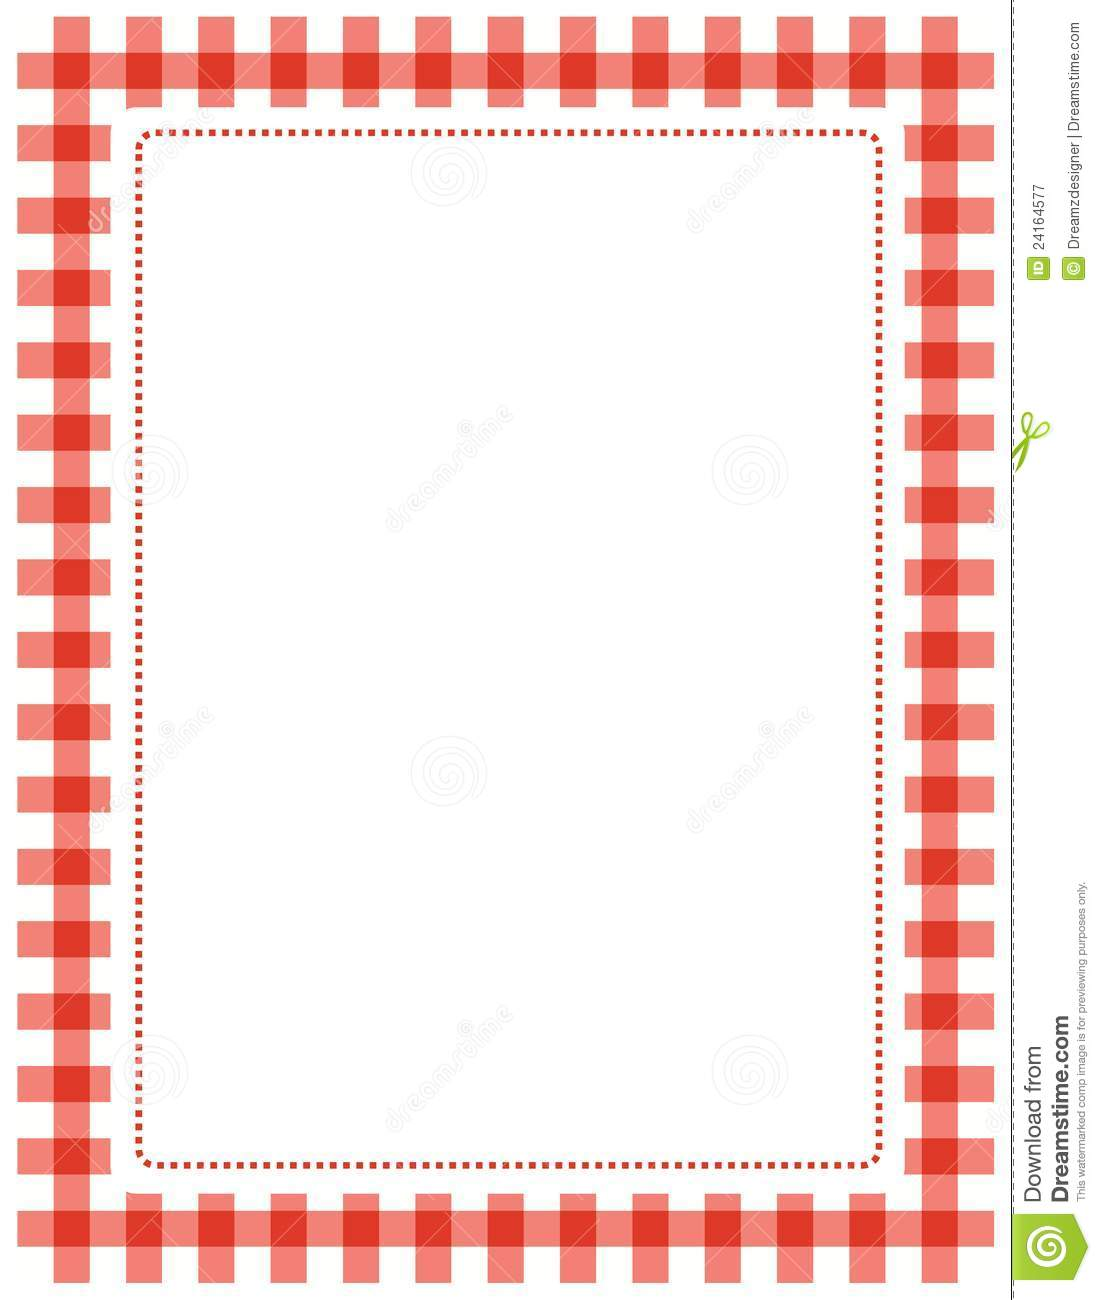 Red checkered border clipart free clip art transparent download 77+ Checkered Border Clip Art | ClipartLook clip art transparent download